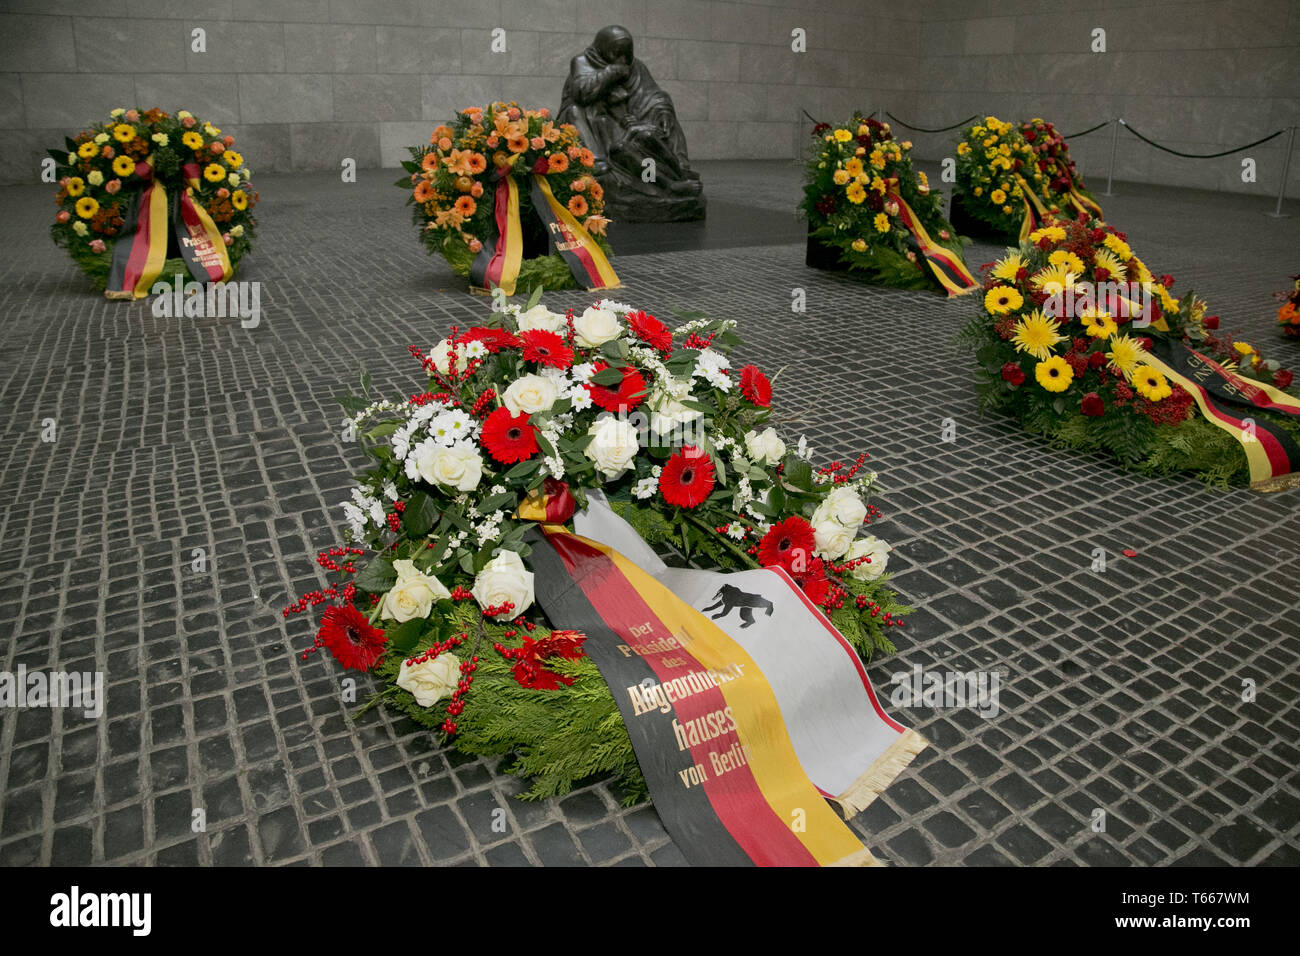 Memorial Day: a wreath for victims of war and tyra - Stock Image